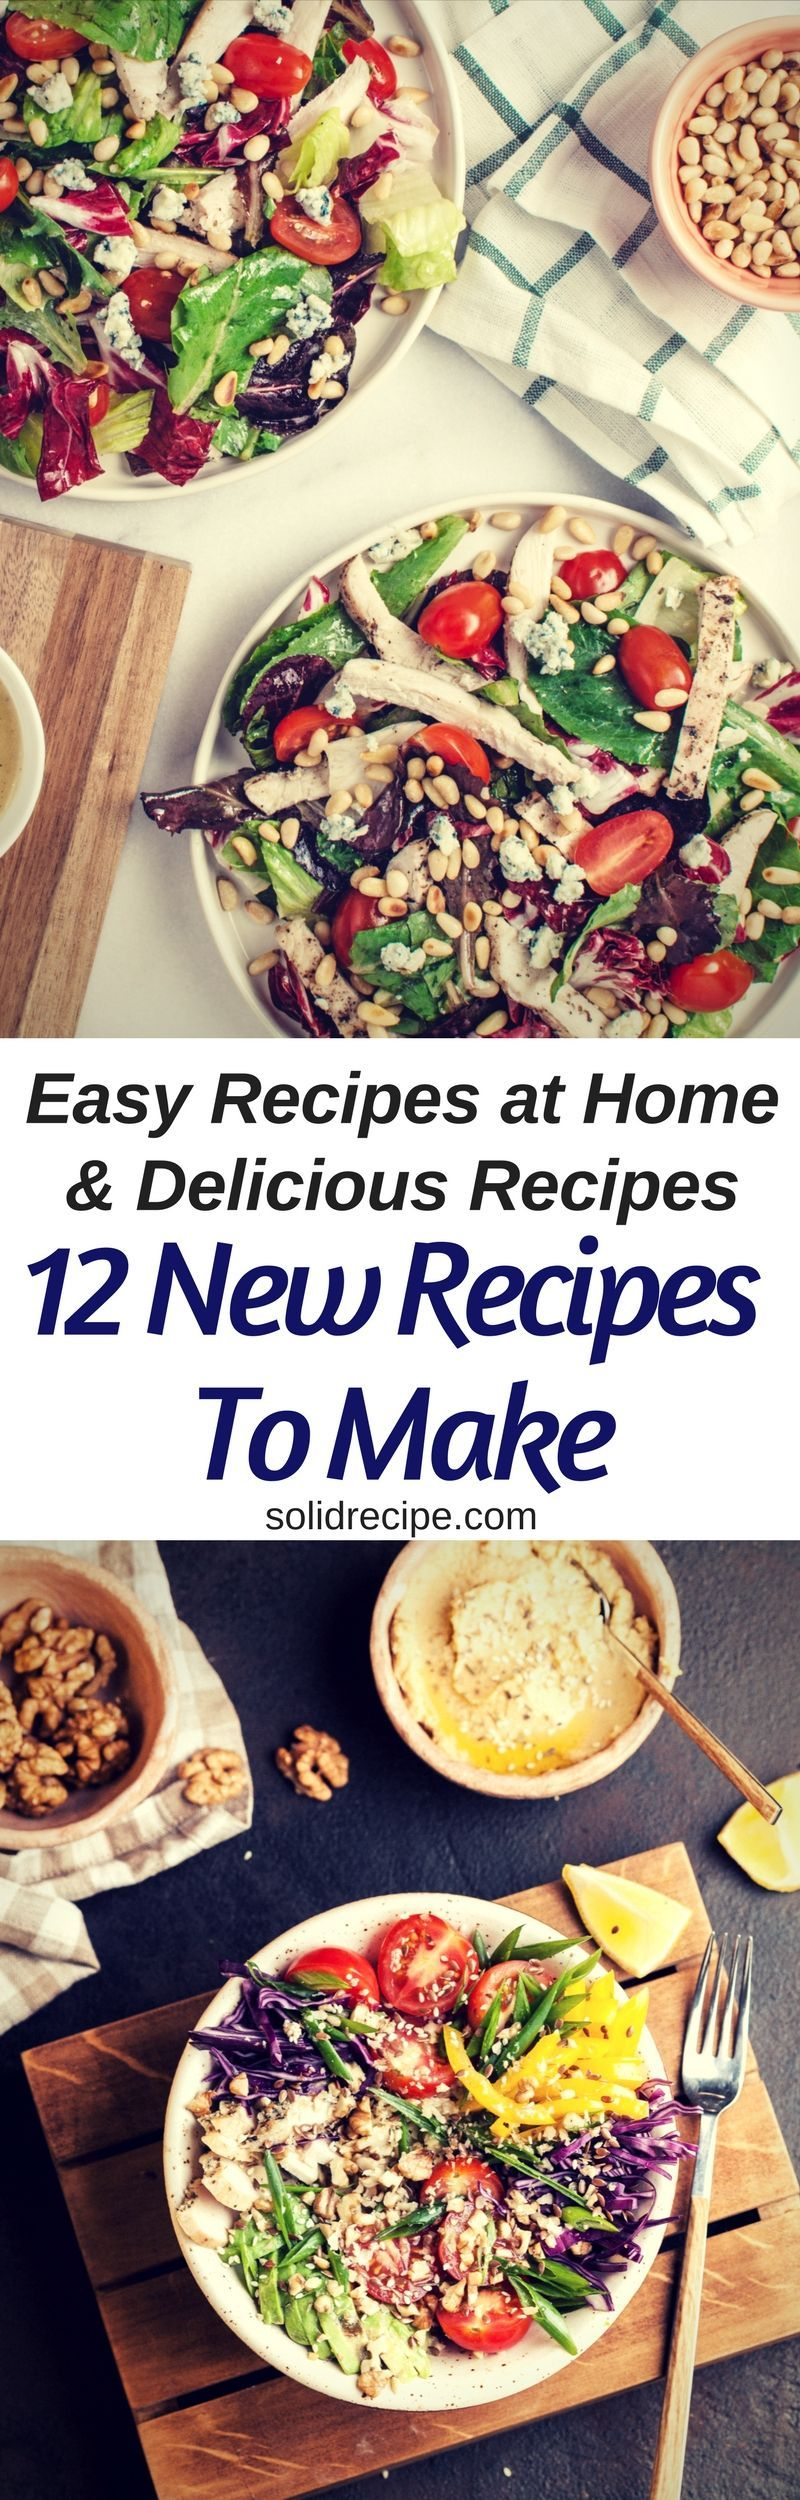 12 Recipes For New Year 2018 Easy Recipes at Home